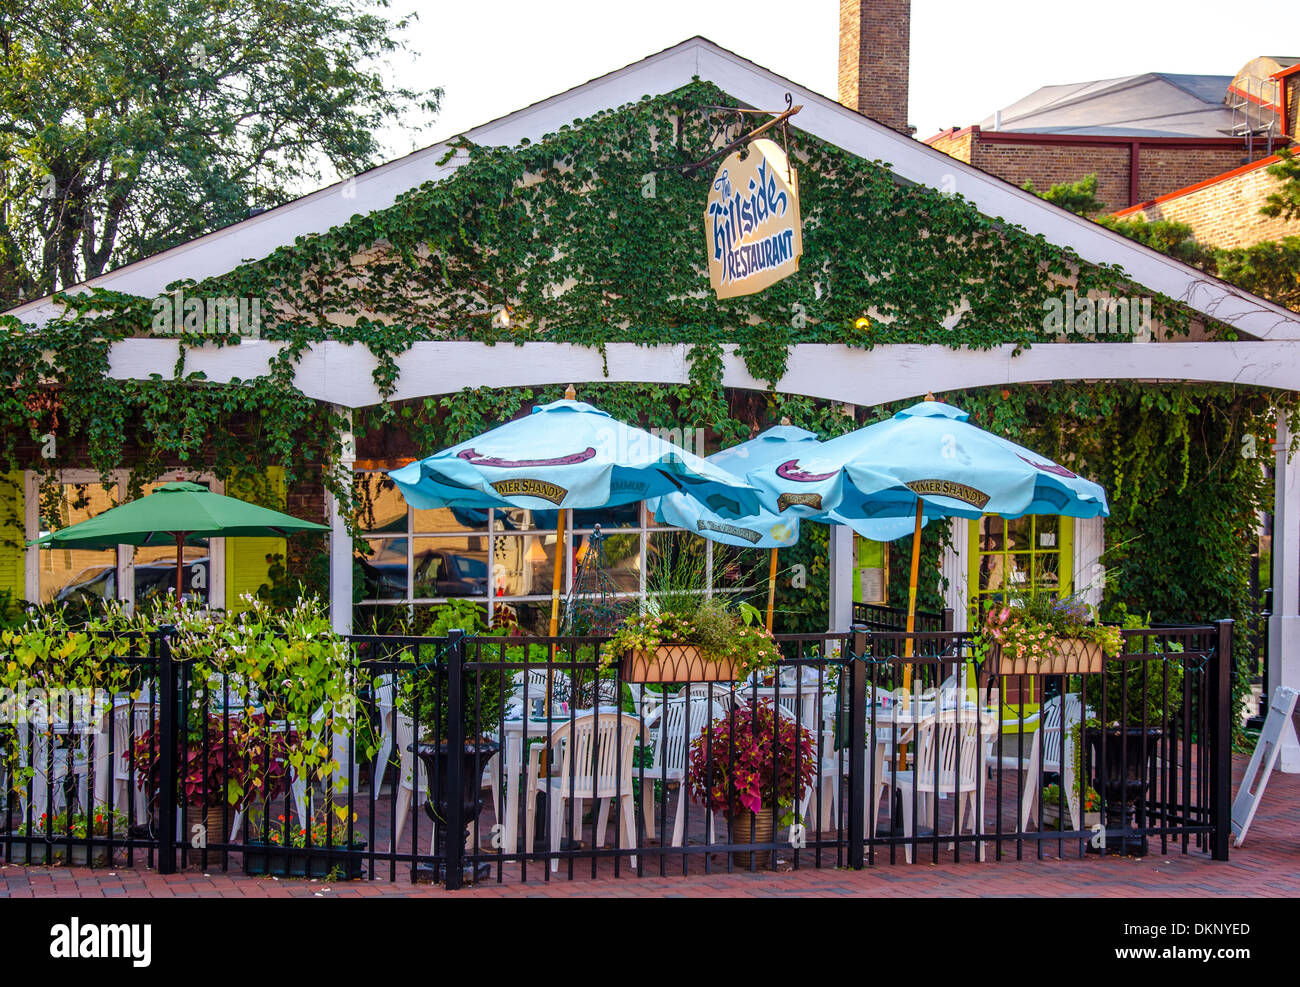 The Hillside is a popular restaurant in DeKalb, Illinois a town along the Lincoln Highway. - Stock Image